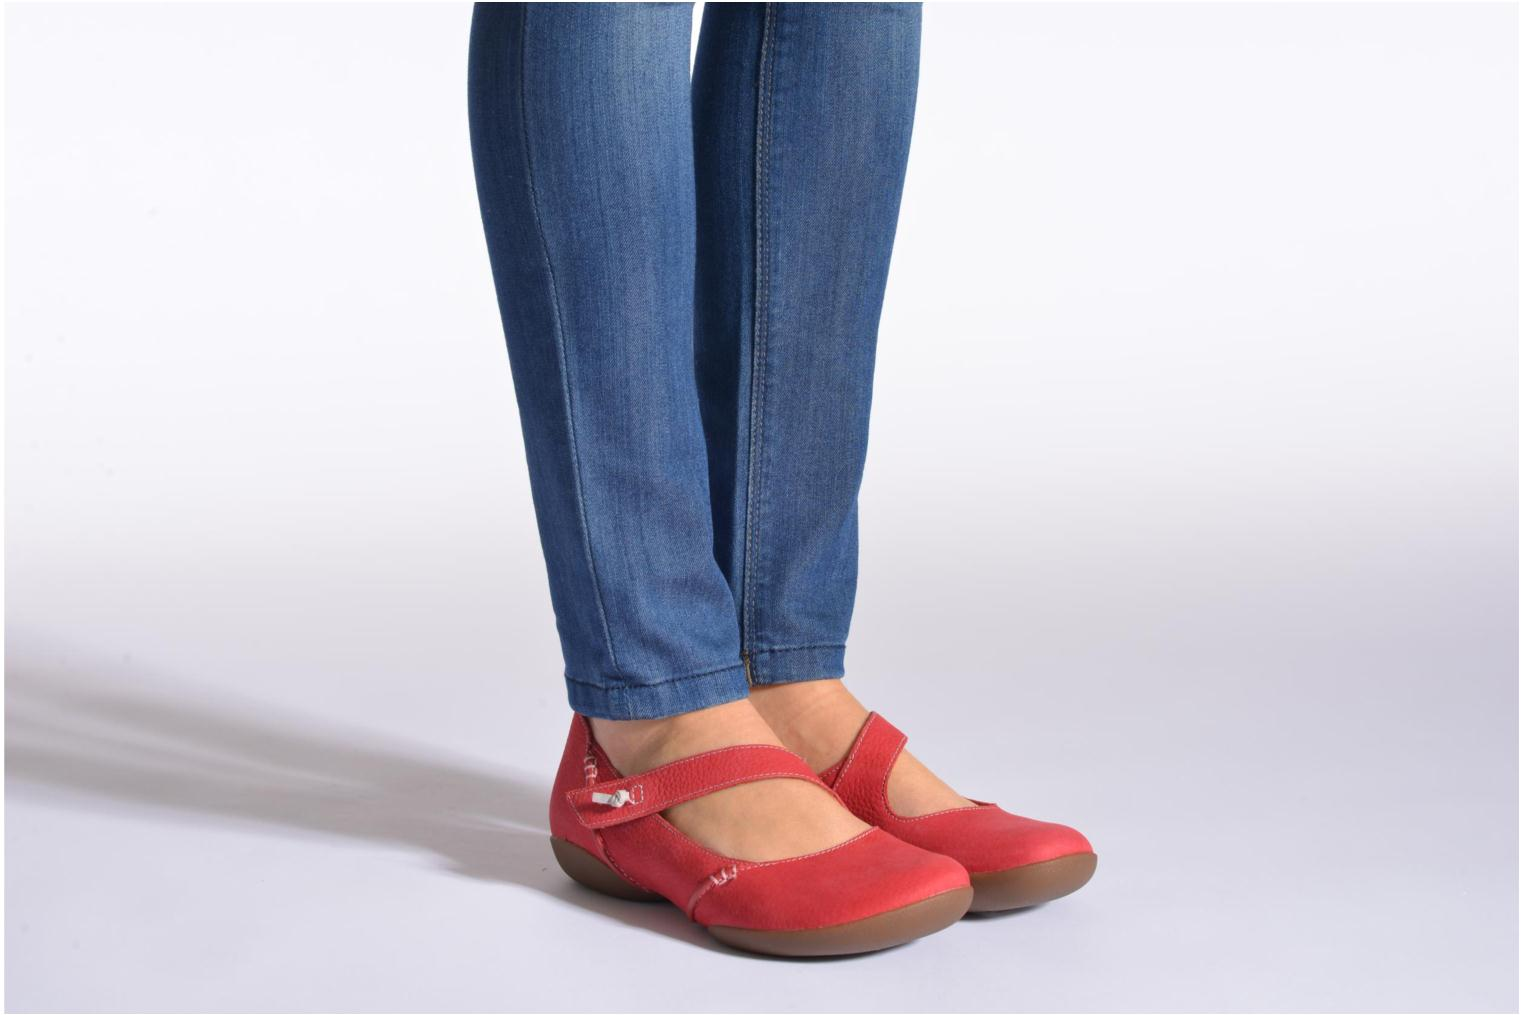 Felicia Plum Red nubuck